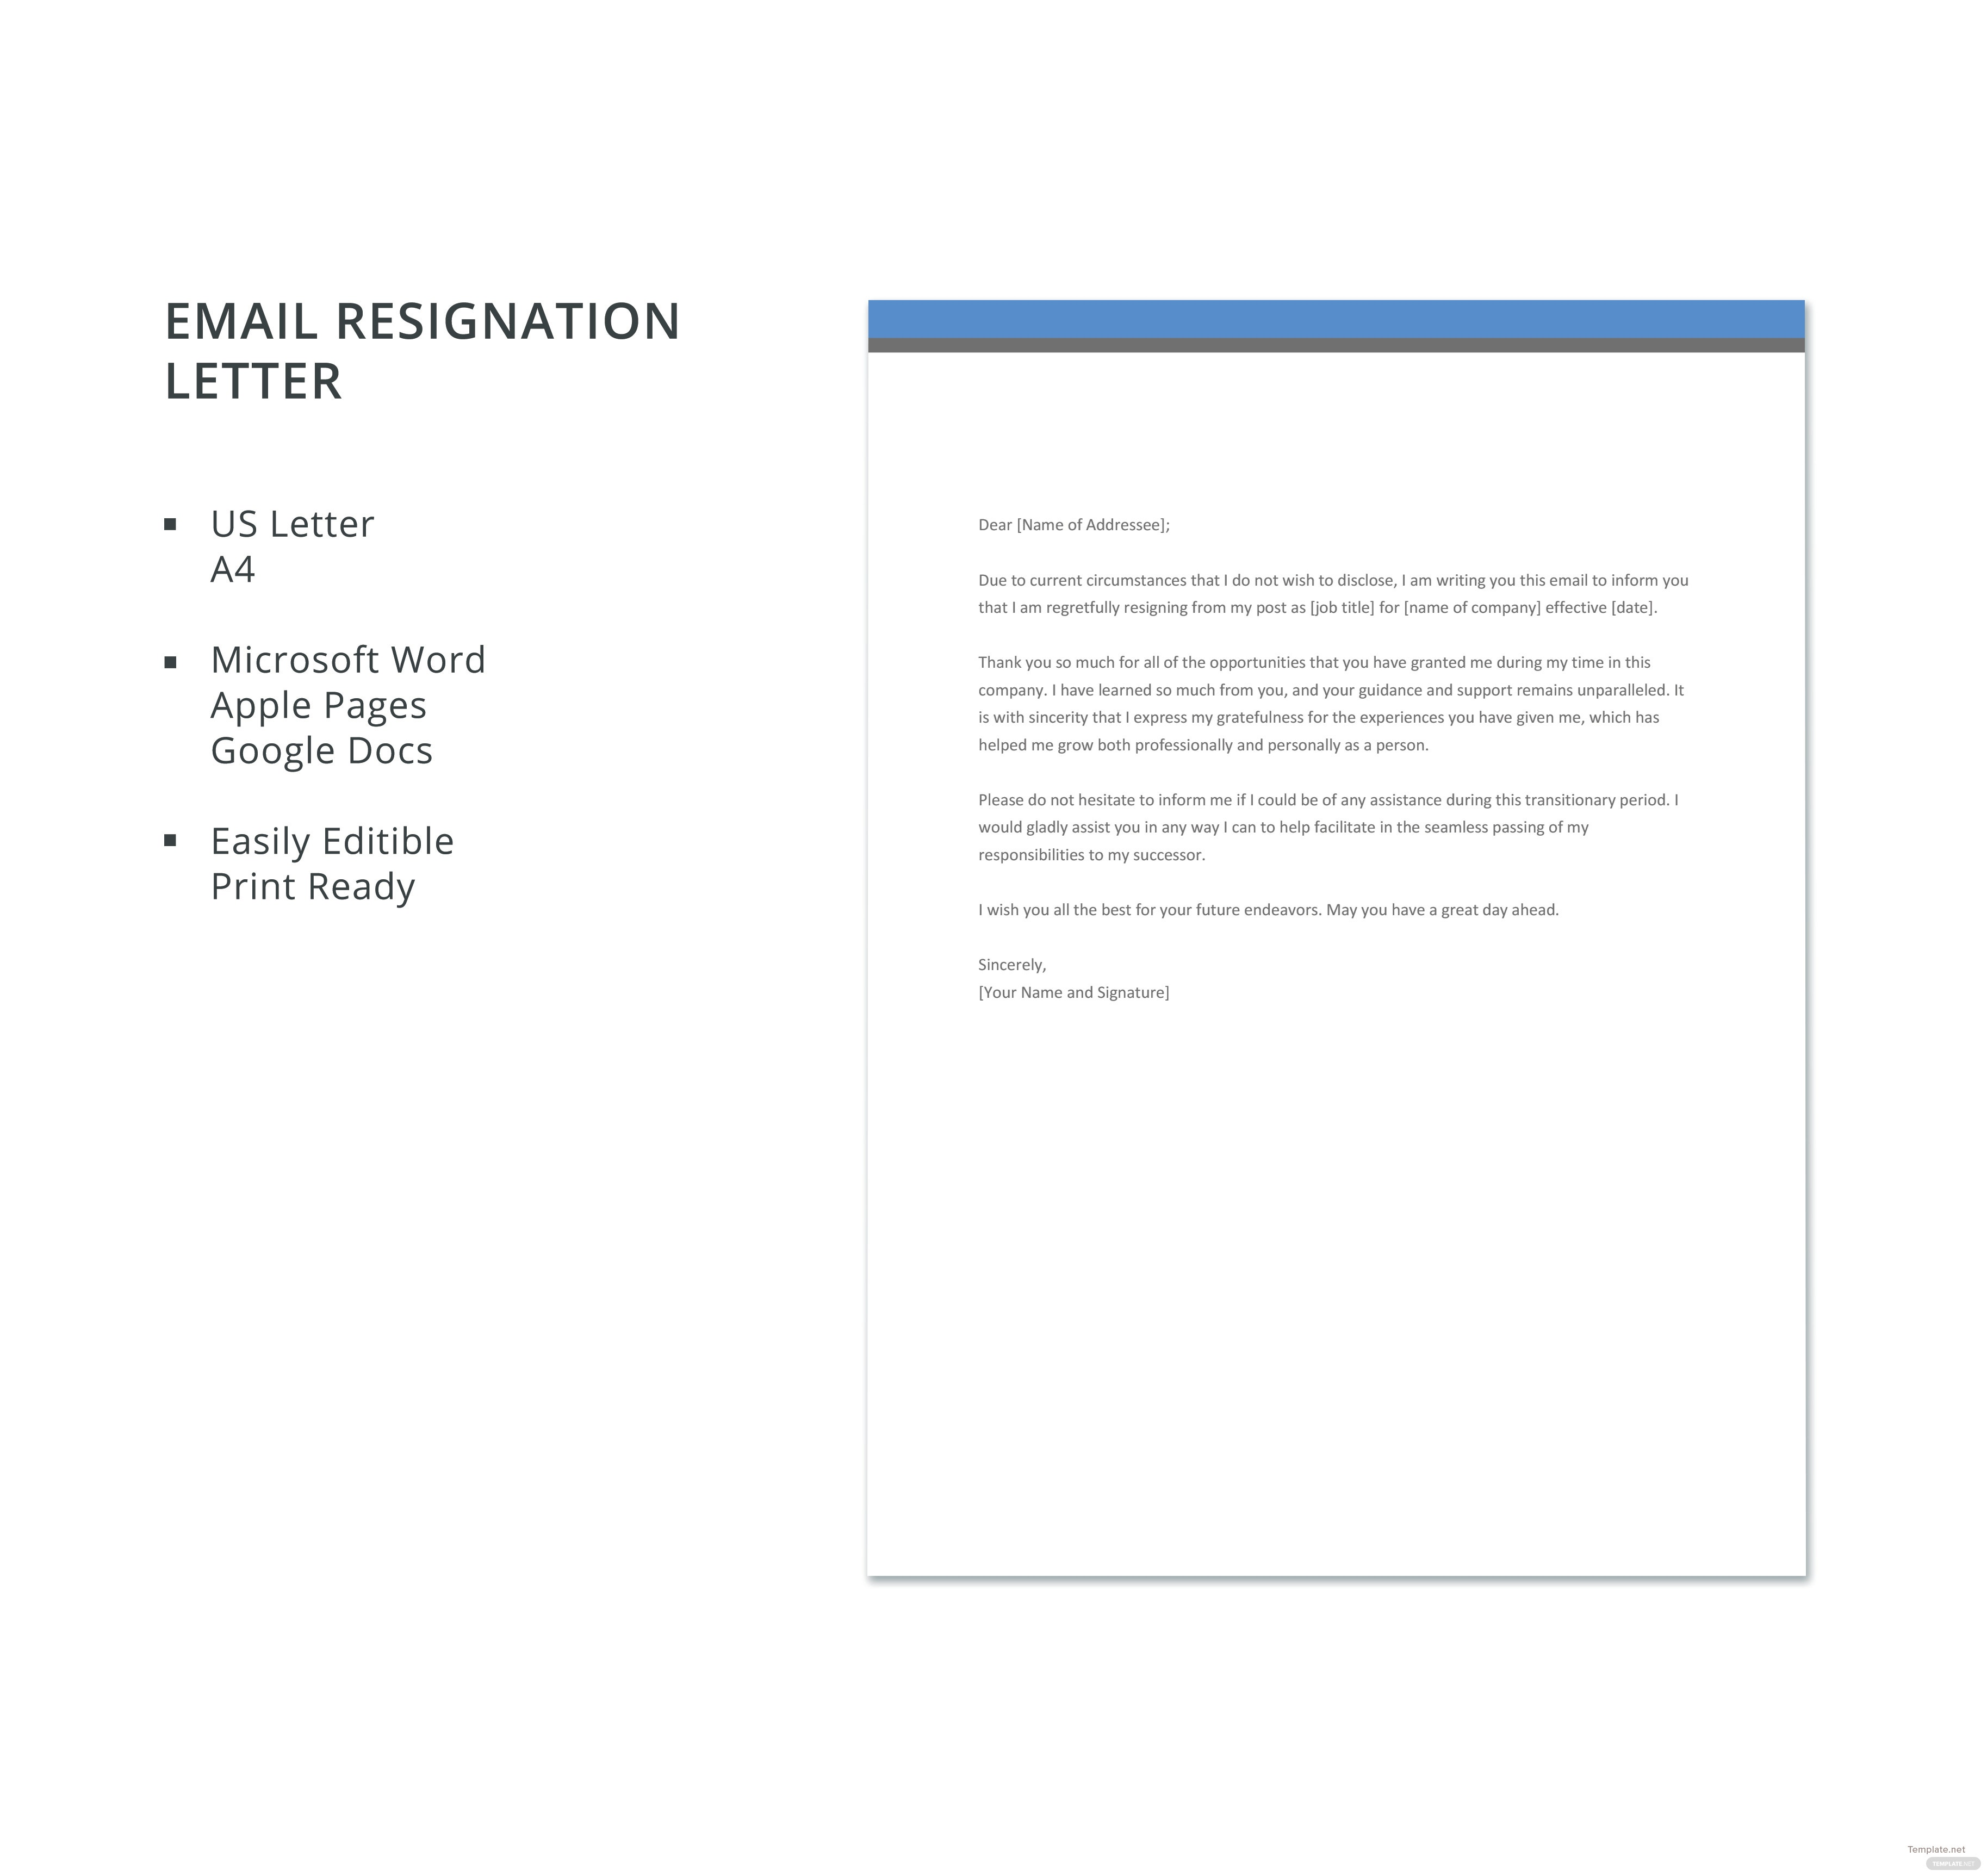 Email resignation letter template in microsoft word apple pages click to see full template email resignation letter spiritdancerdesigns Images